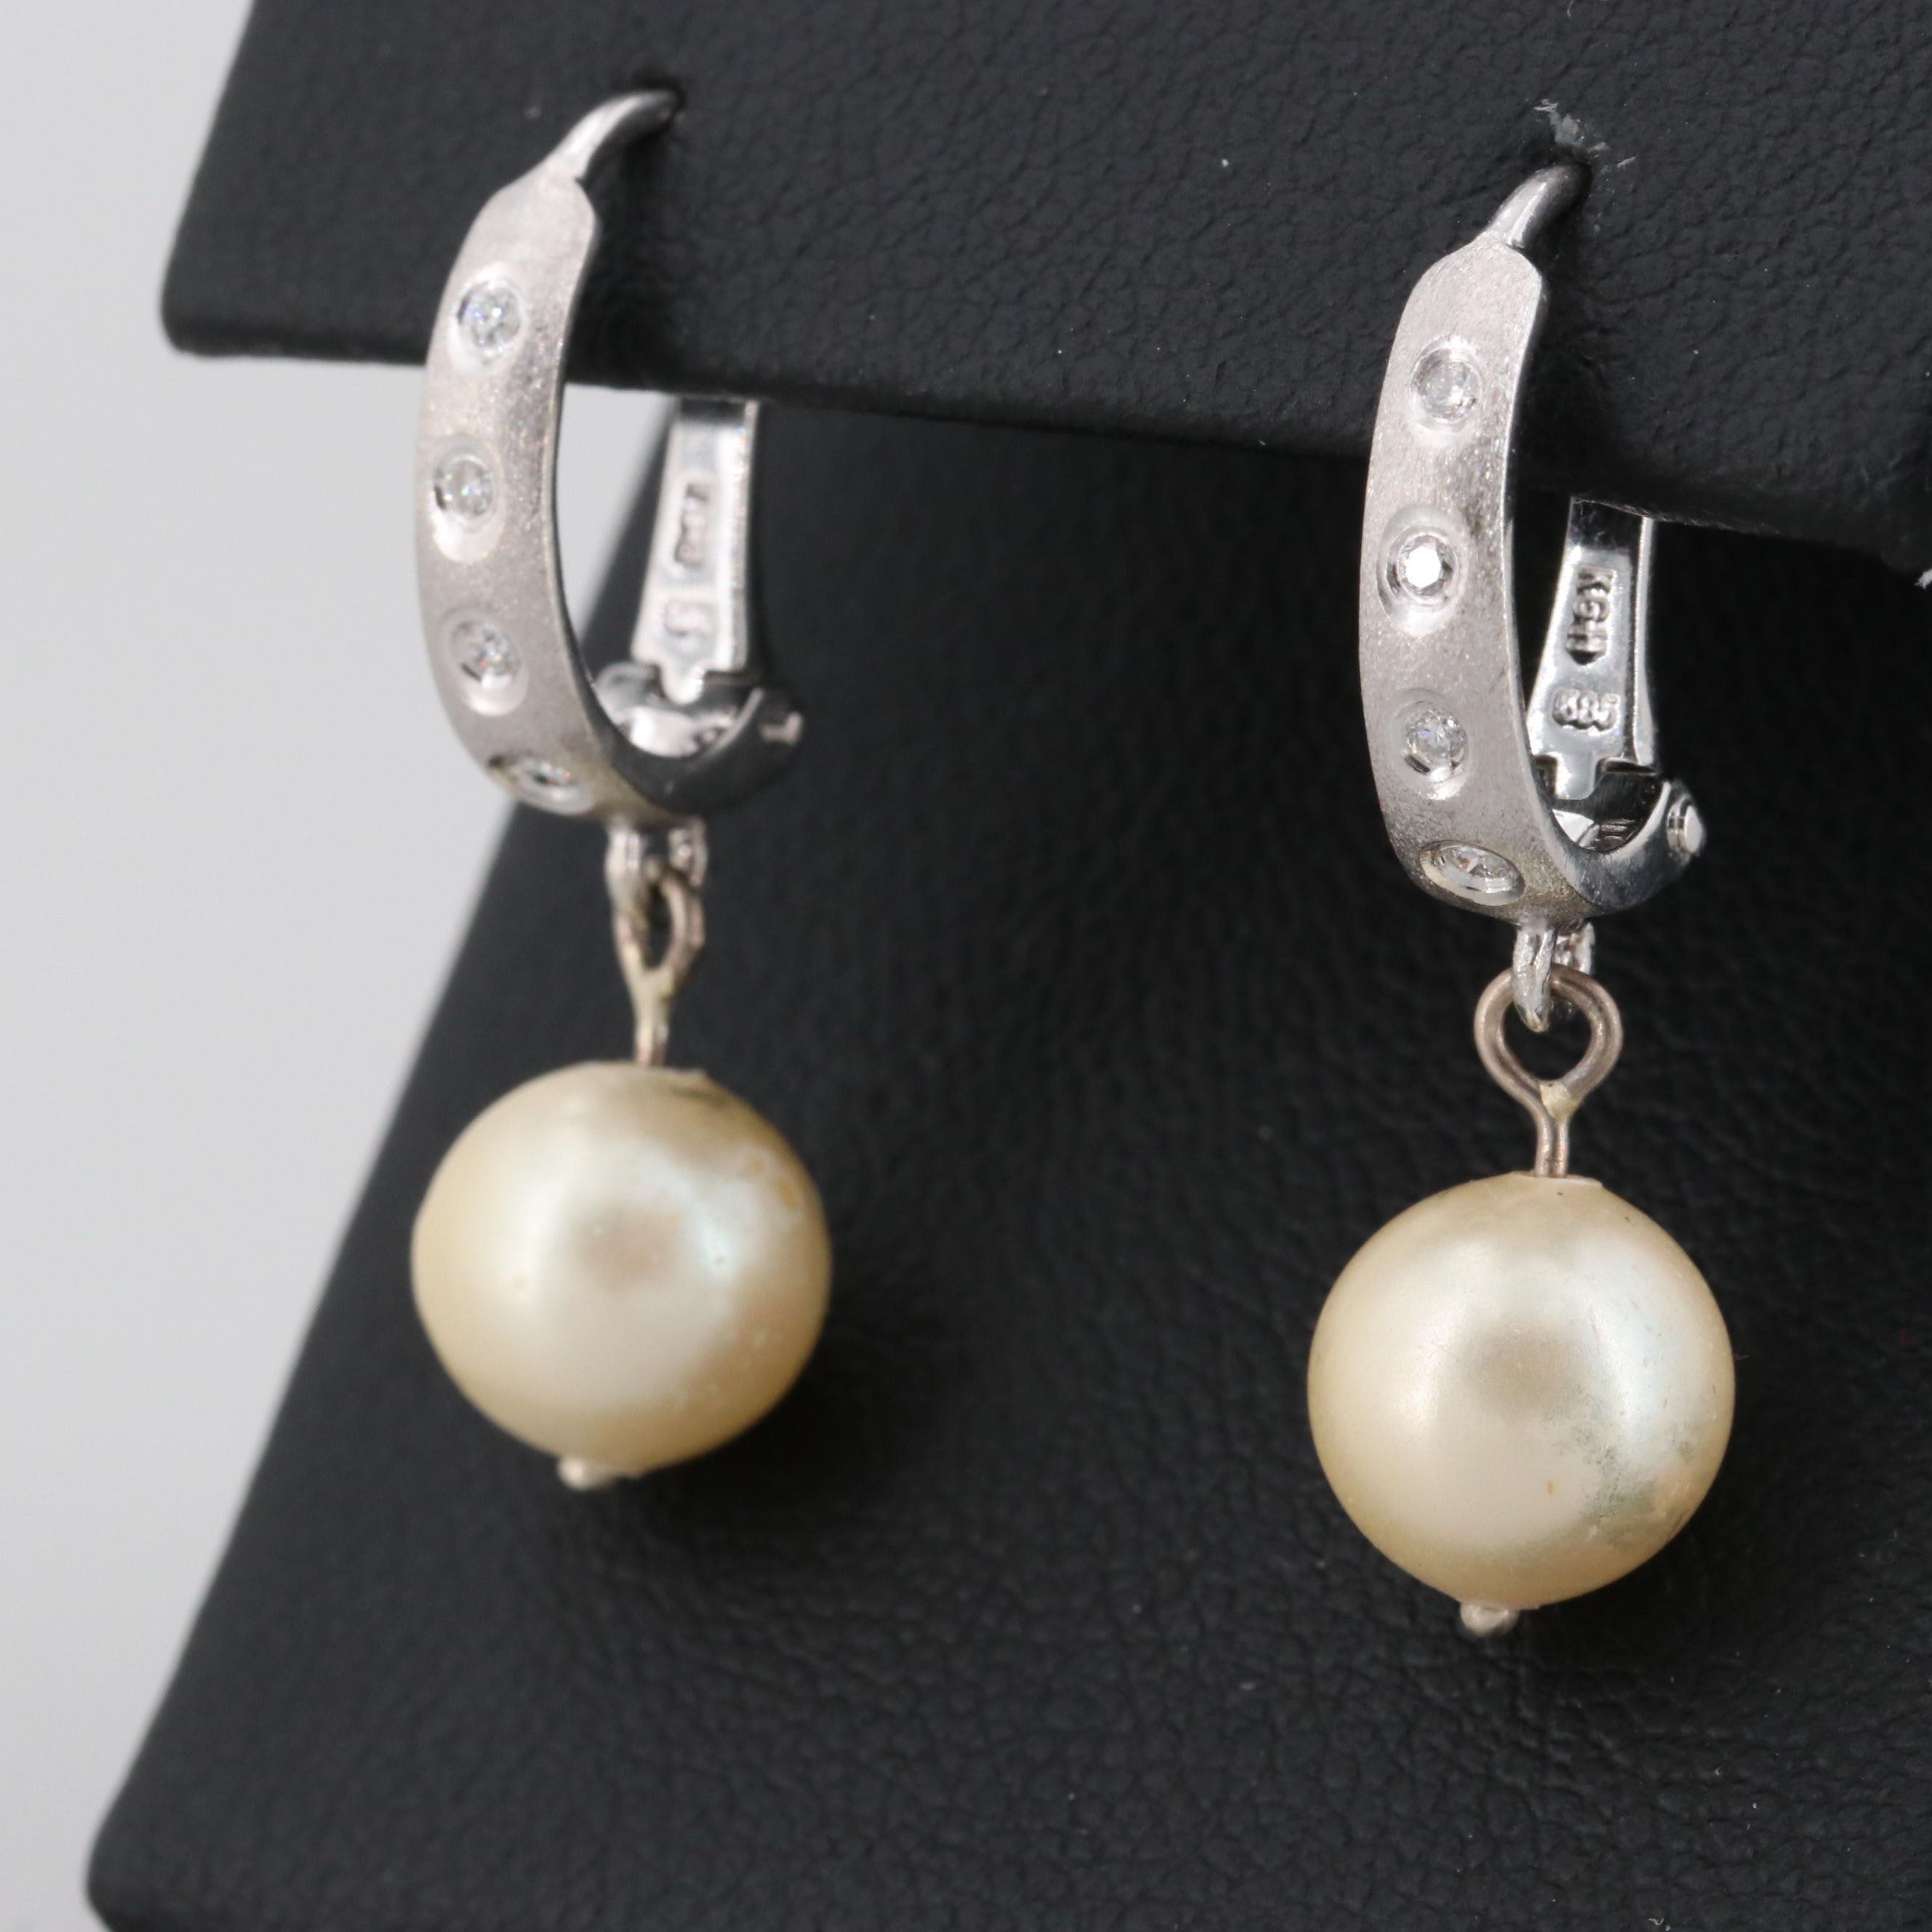 14K White Gold Diamond and Imitation Pearl Earrings